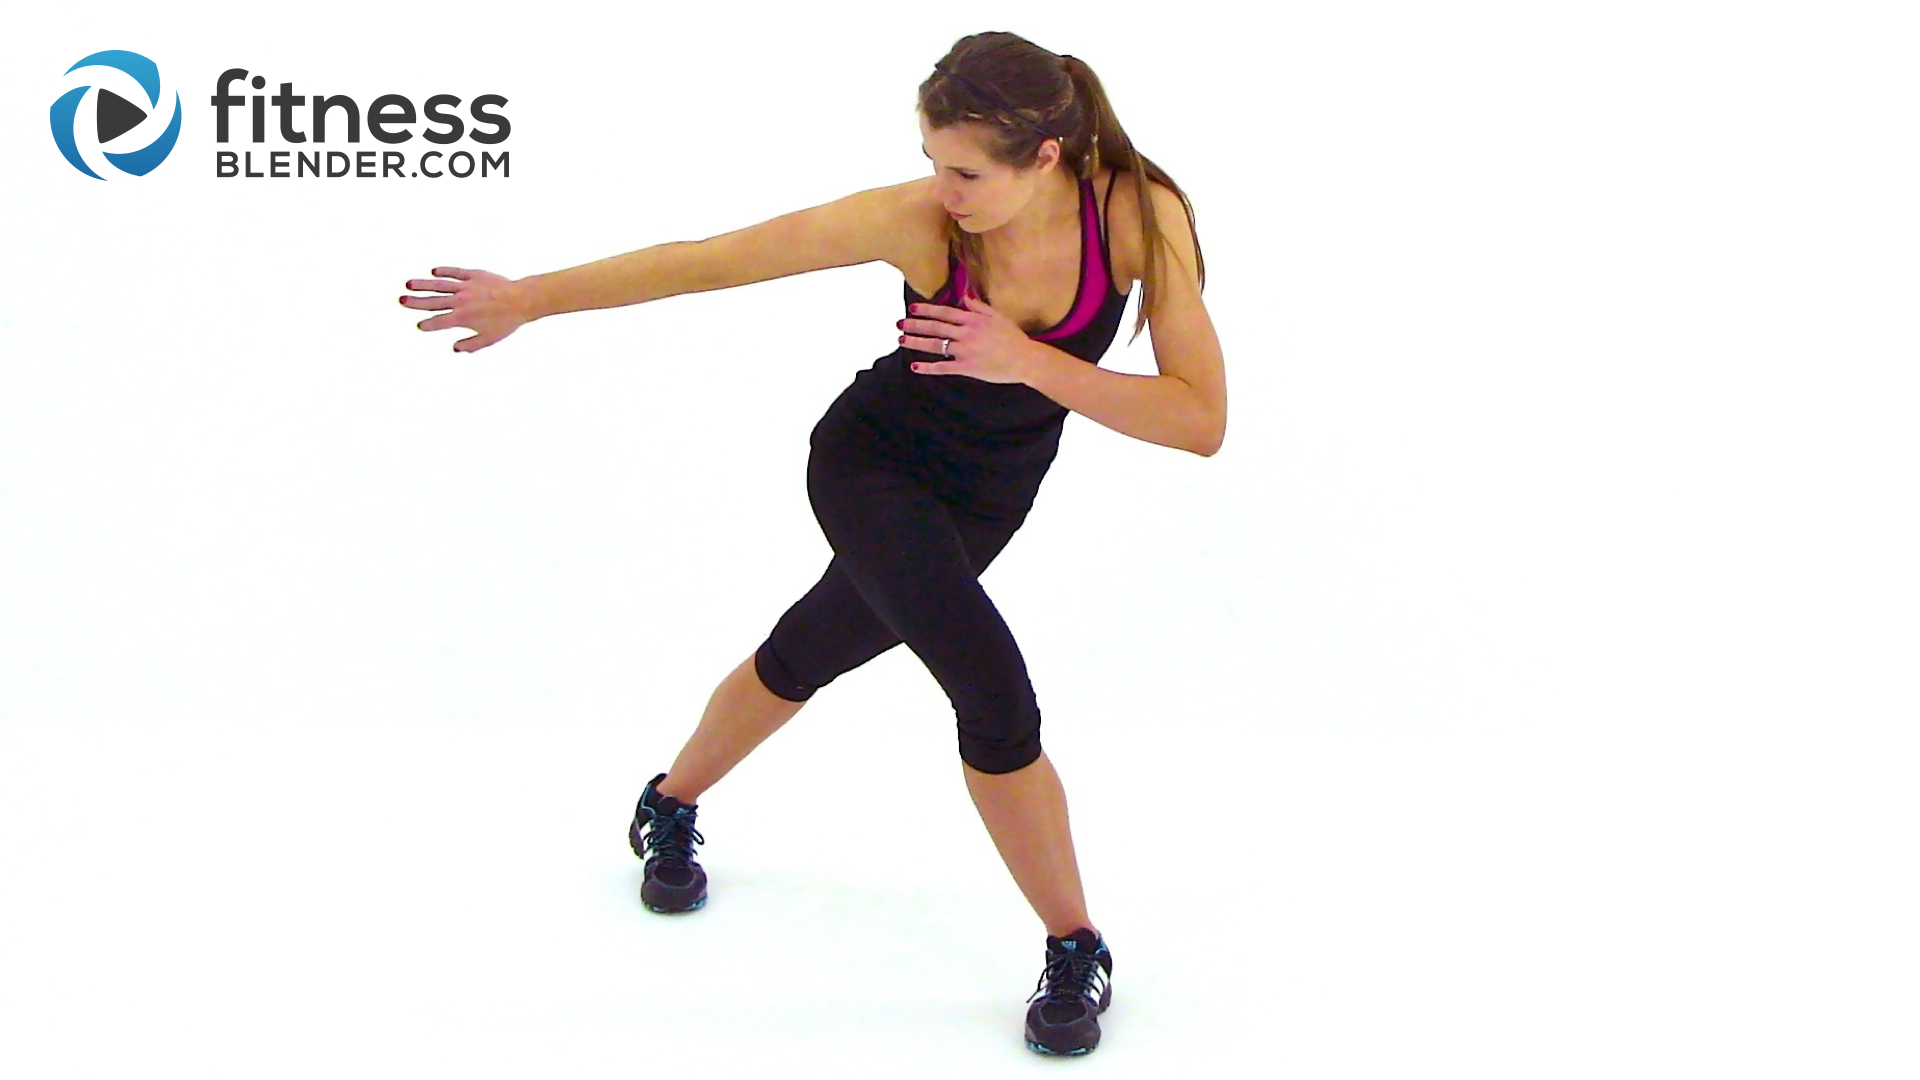 O Low Impact Cardio Workout For Beginners on Two Step Dance Steps Diagram